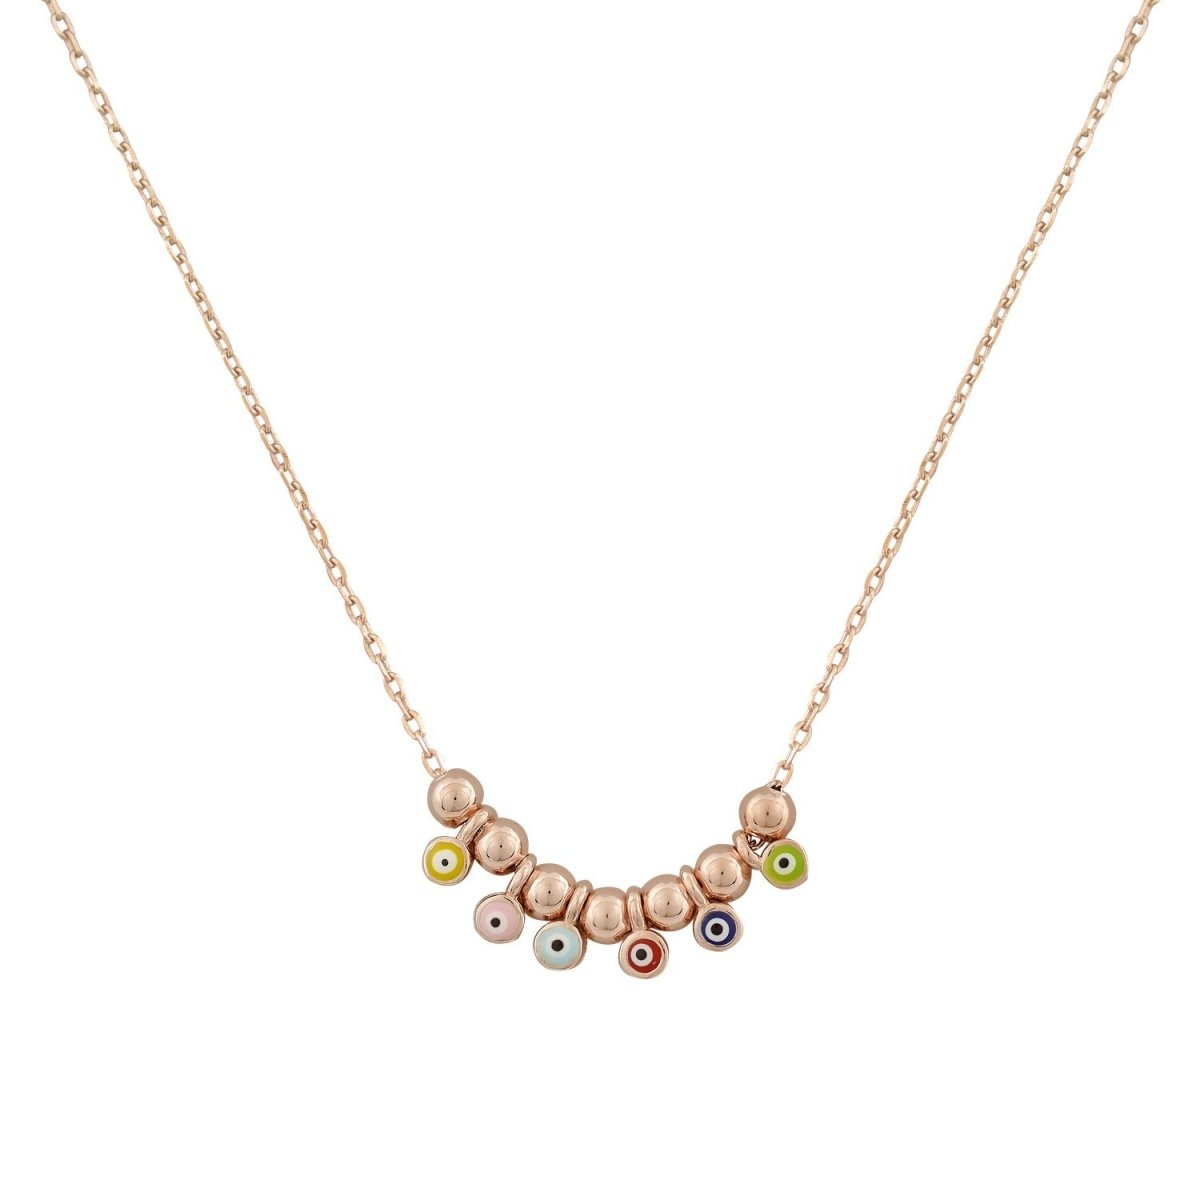 Necklace ZN1404 Eyes Made Of Rose Gold Plated Silver - Goldy Jewelry Store